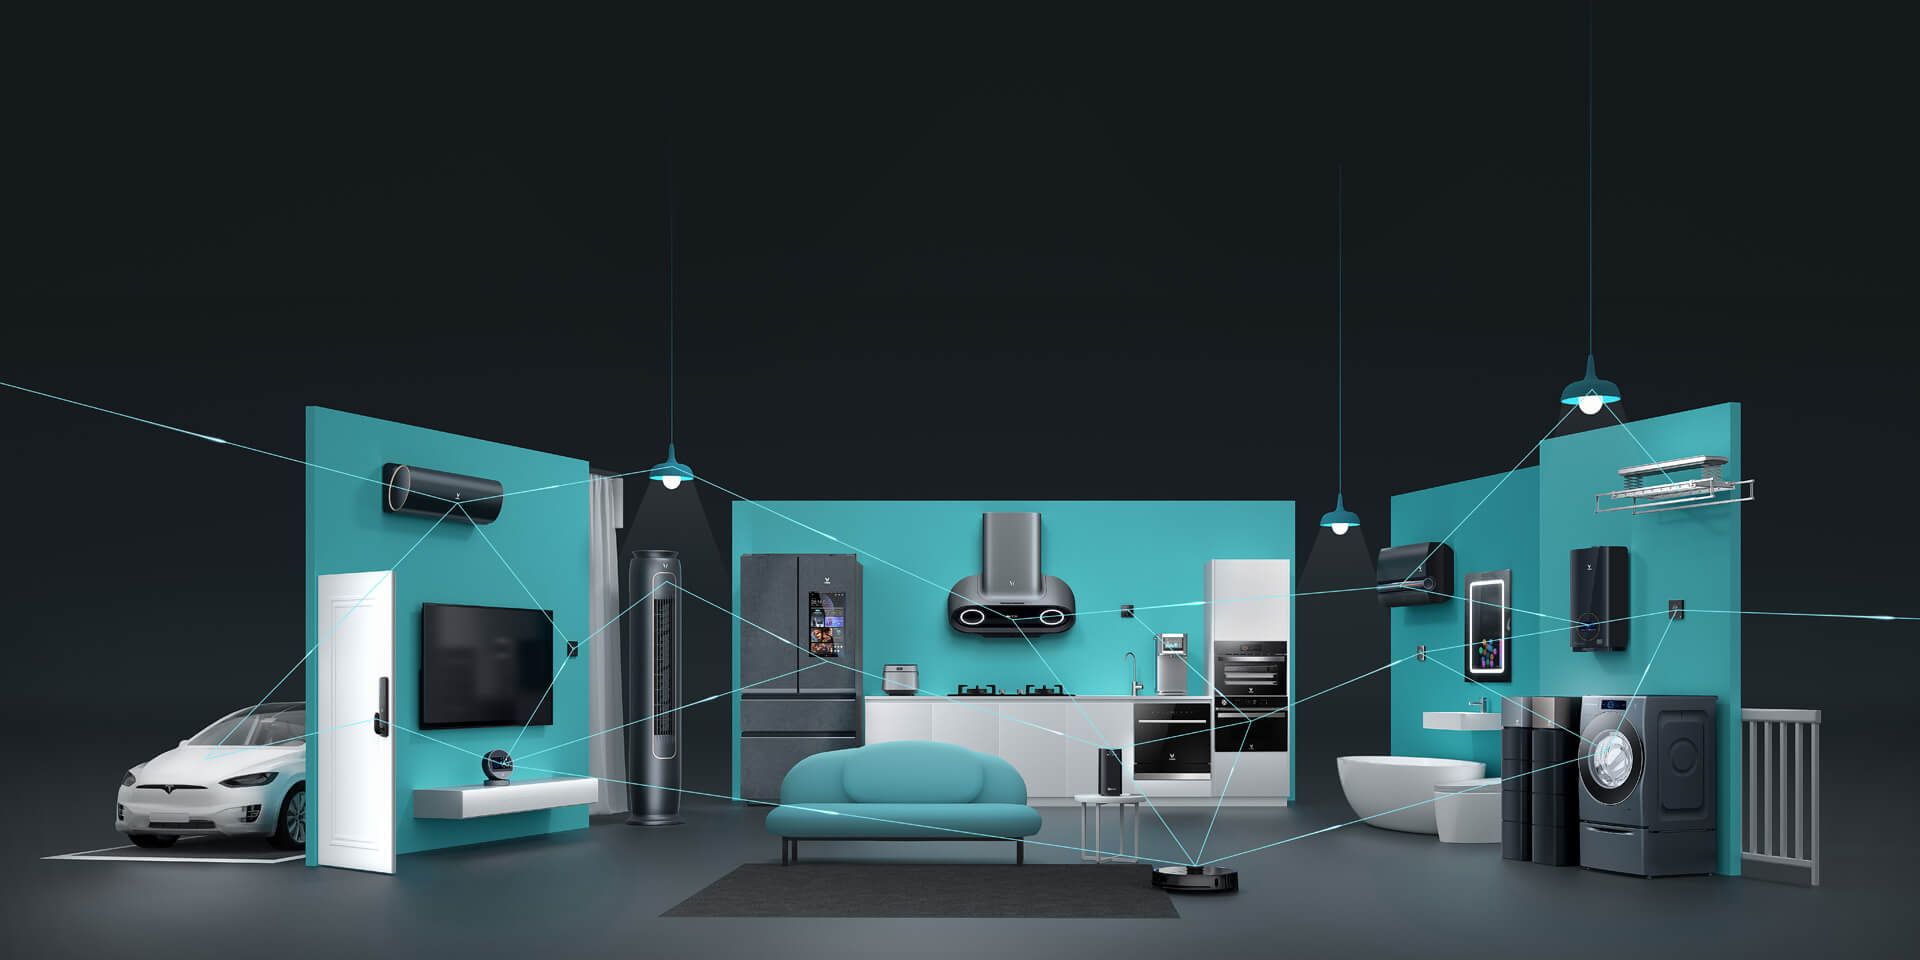 IoT@Home Is The Future